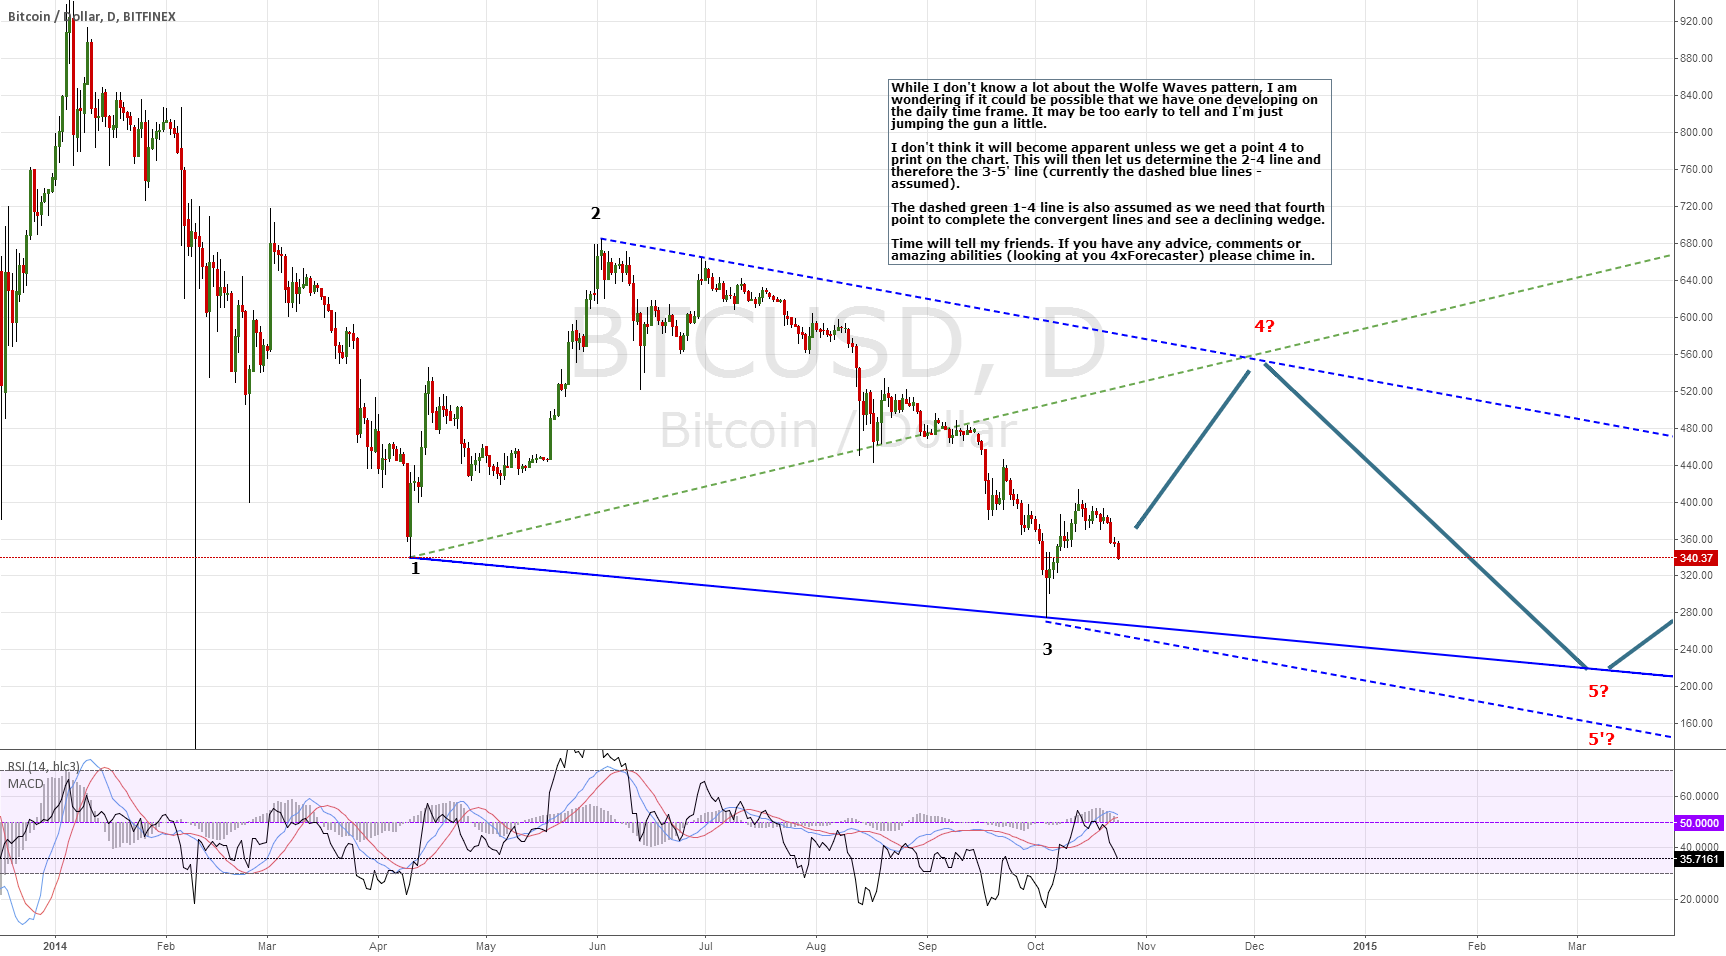 Do we have a Wolfe Waves Pattern forming on the Daily chart??